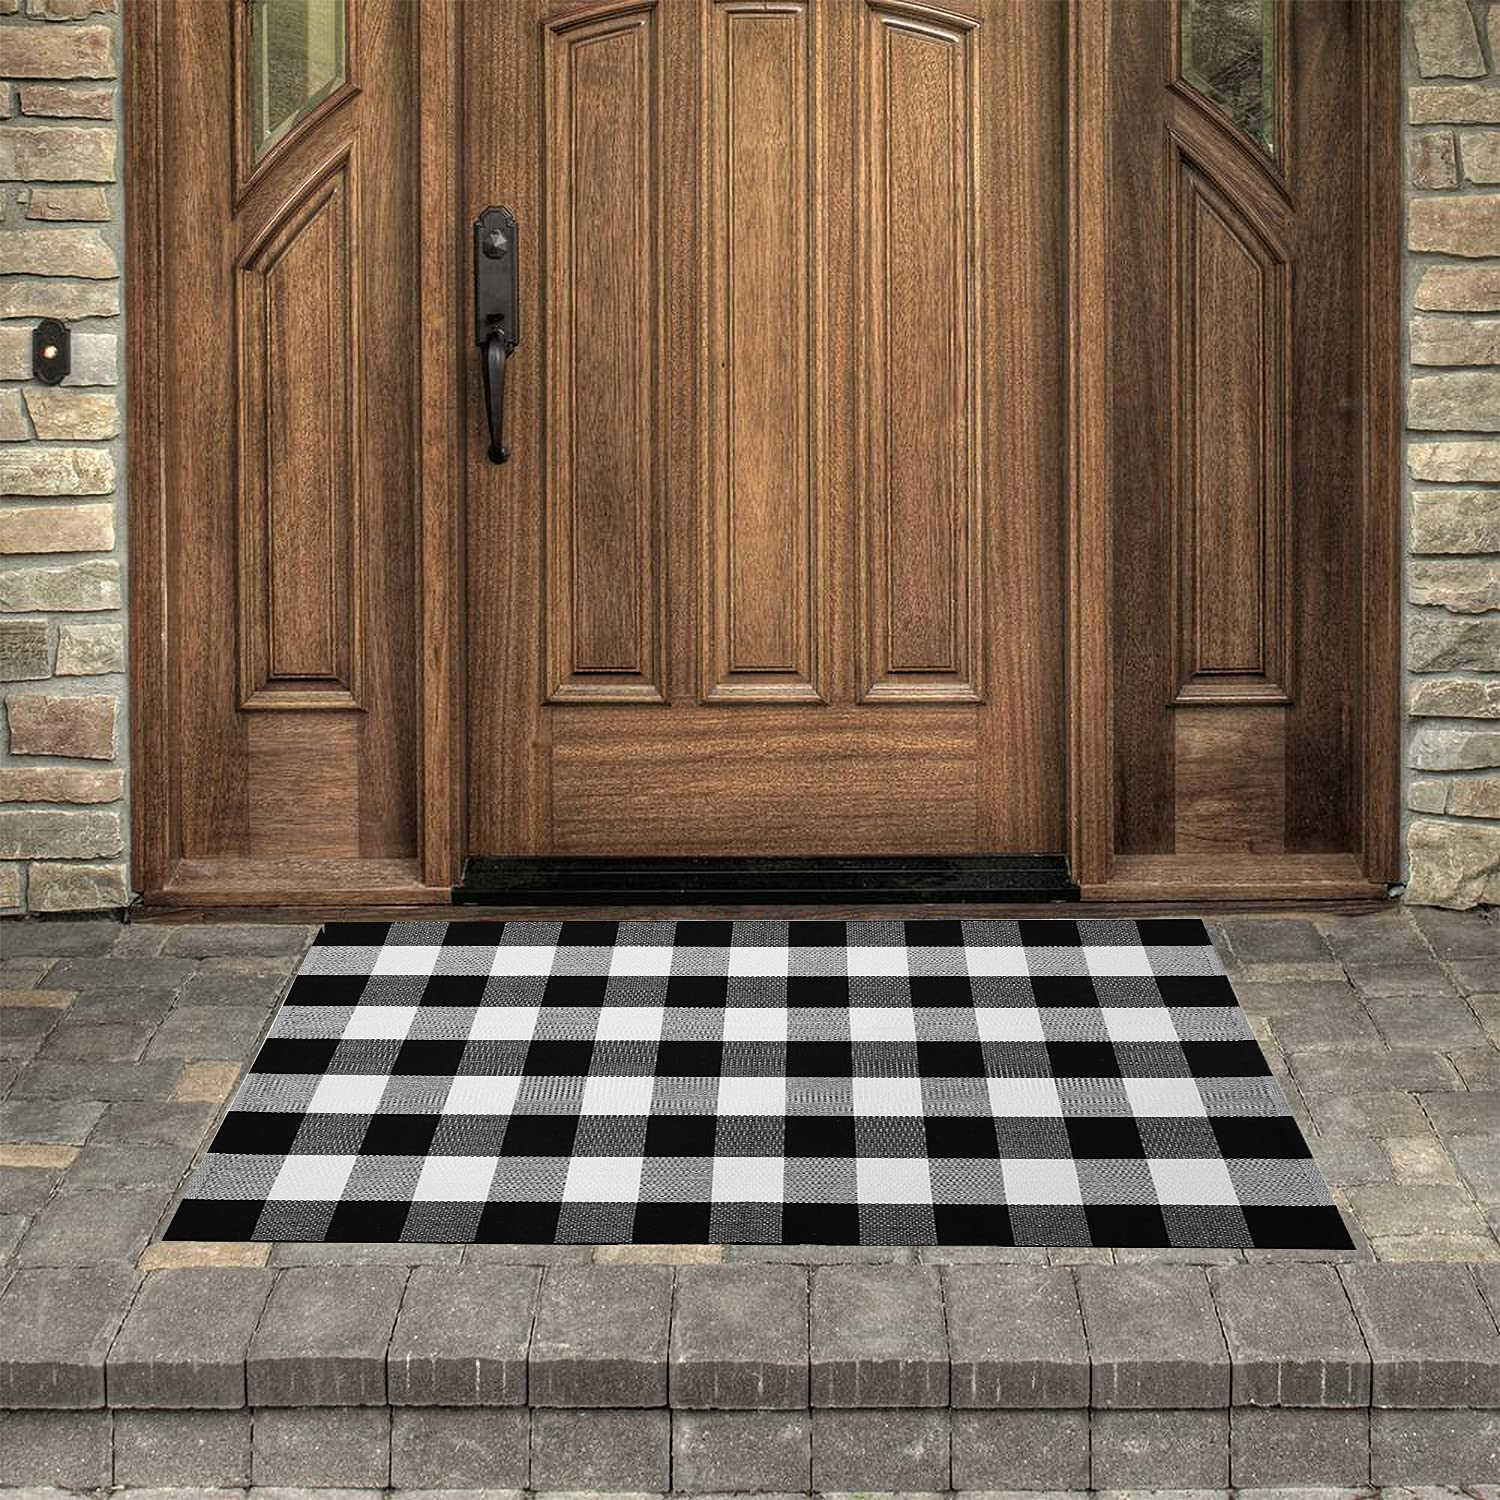 Dave Z-ONE Buffalo Check Rug, Reversible Indoor Woven Plaid Outdoor Door Mat for Front Porch/Layered Doormats Porch/Farmhouse Area Rugs, 3' x 5', Black/White